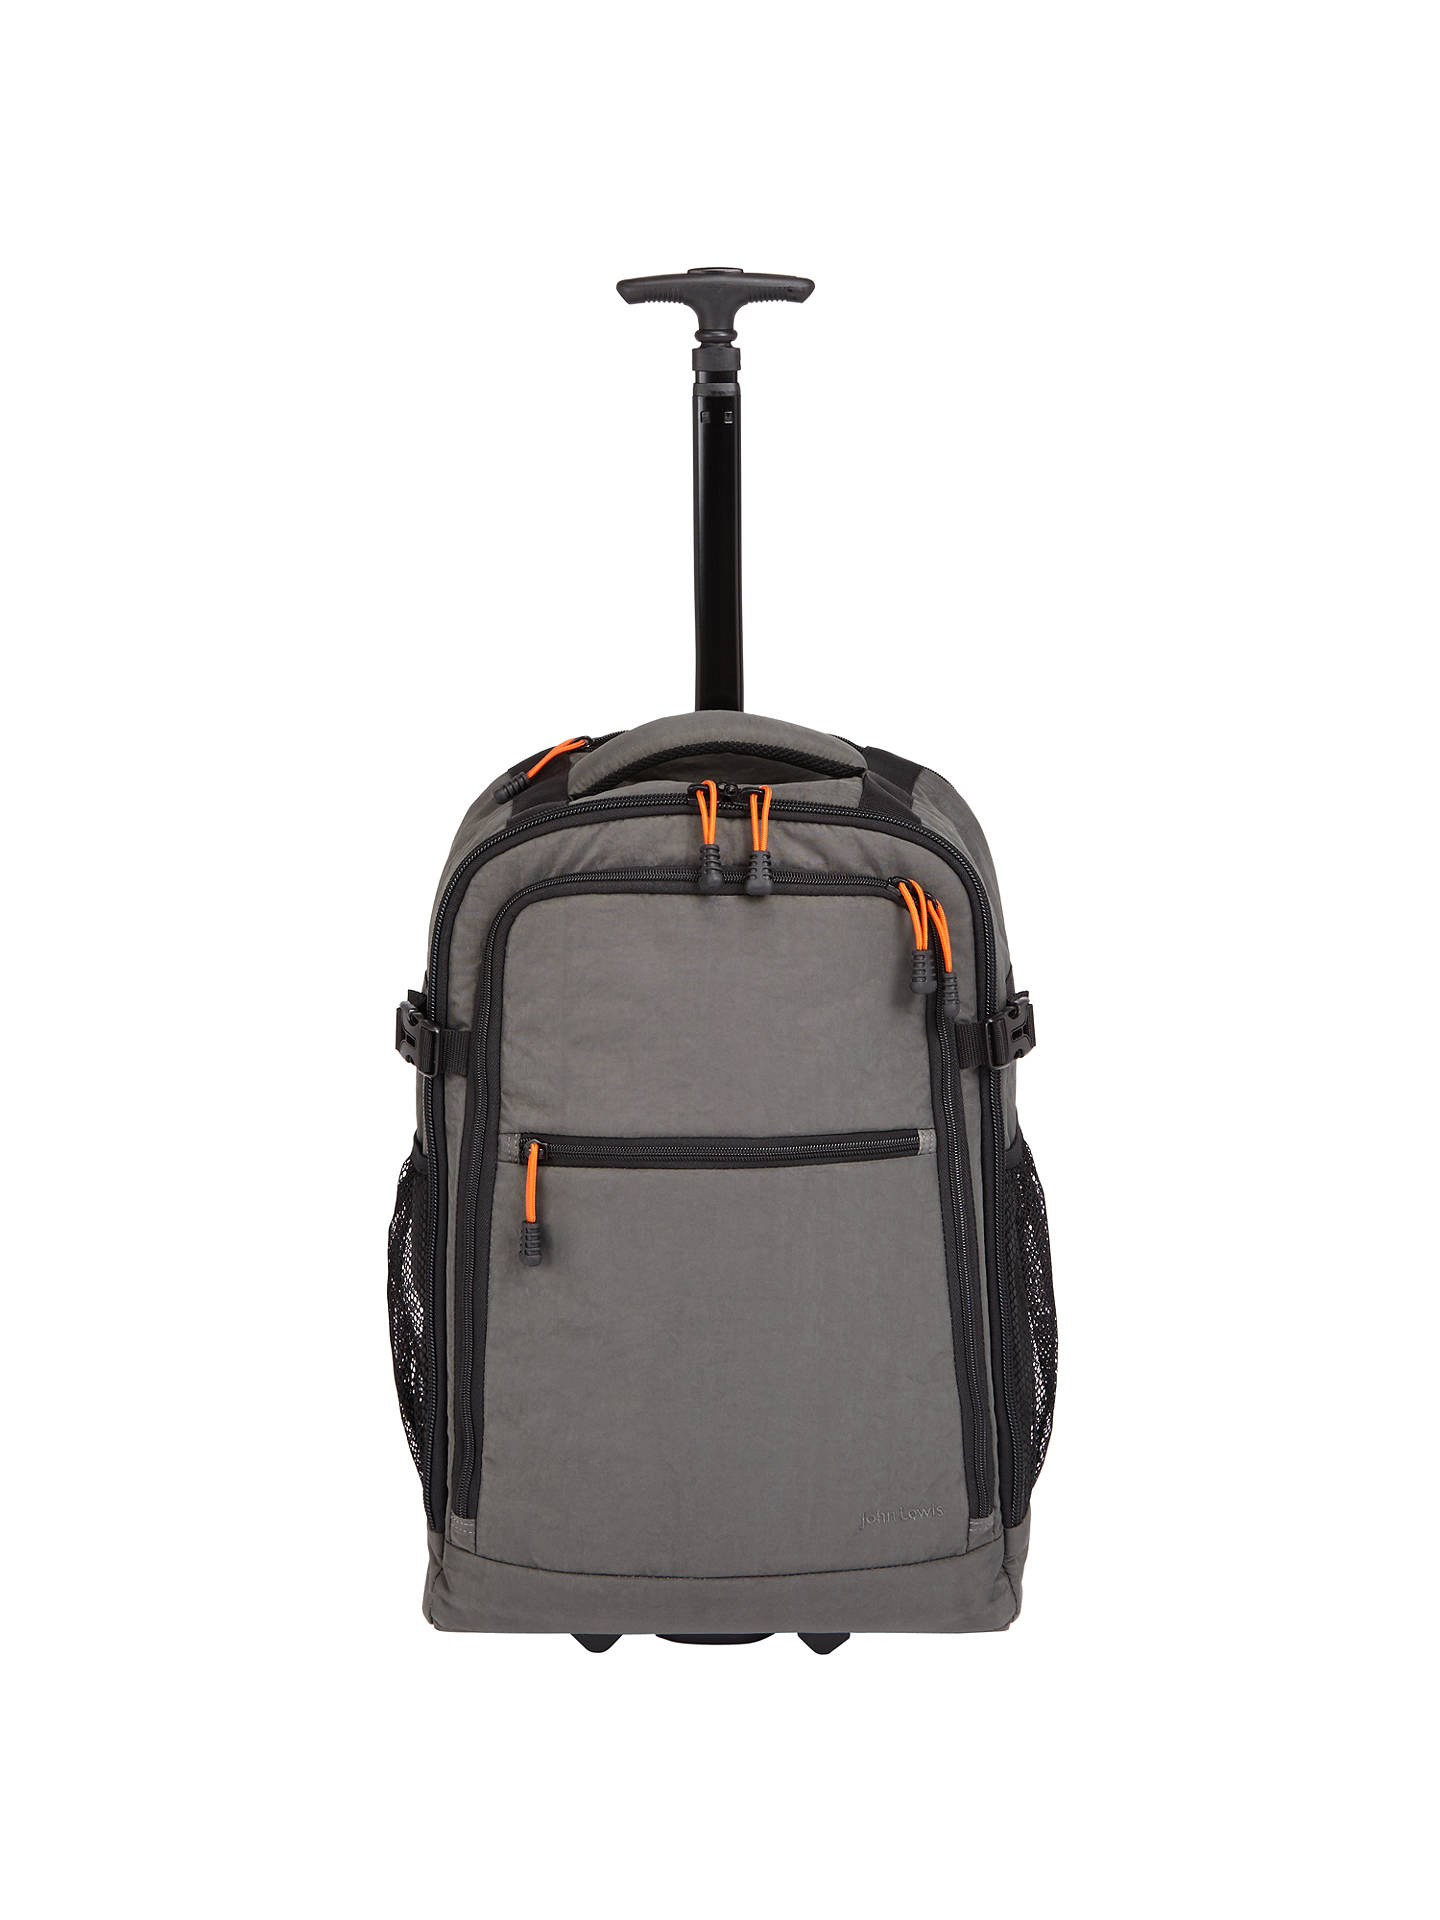 d9f14fc33 Buy John Lewis & Partners Trail Wheelend Backpack Cabin Case, Charcoal  Online at johnlewis.